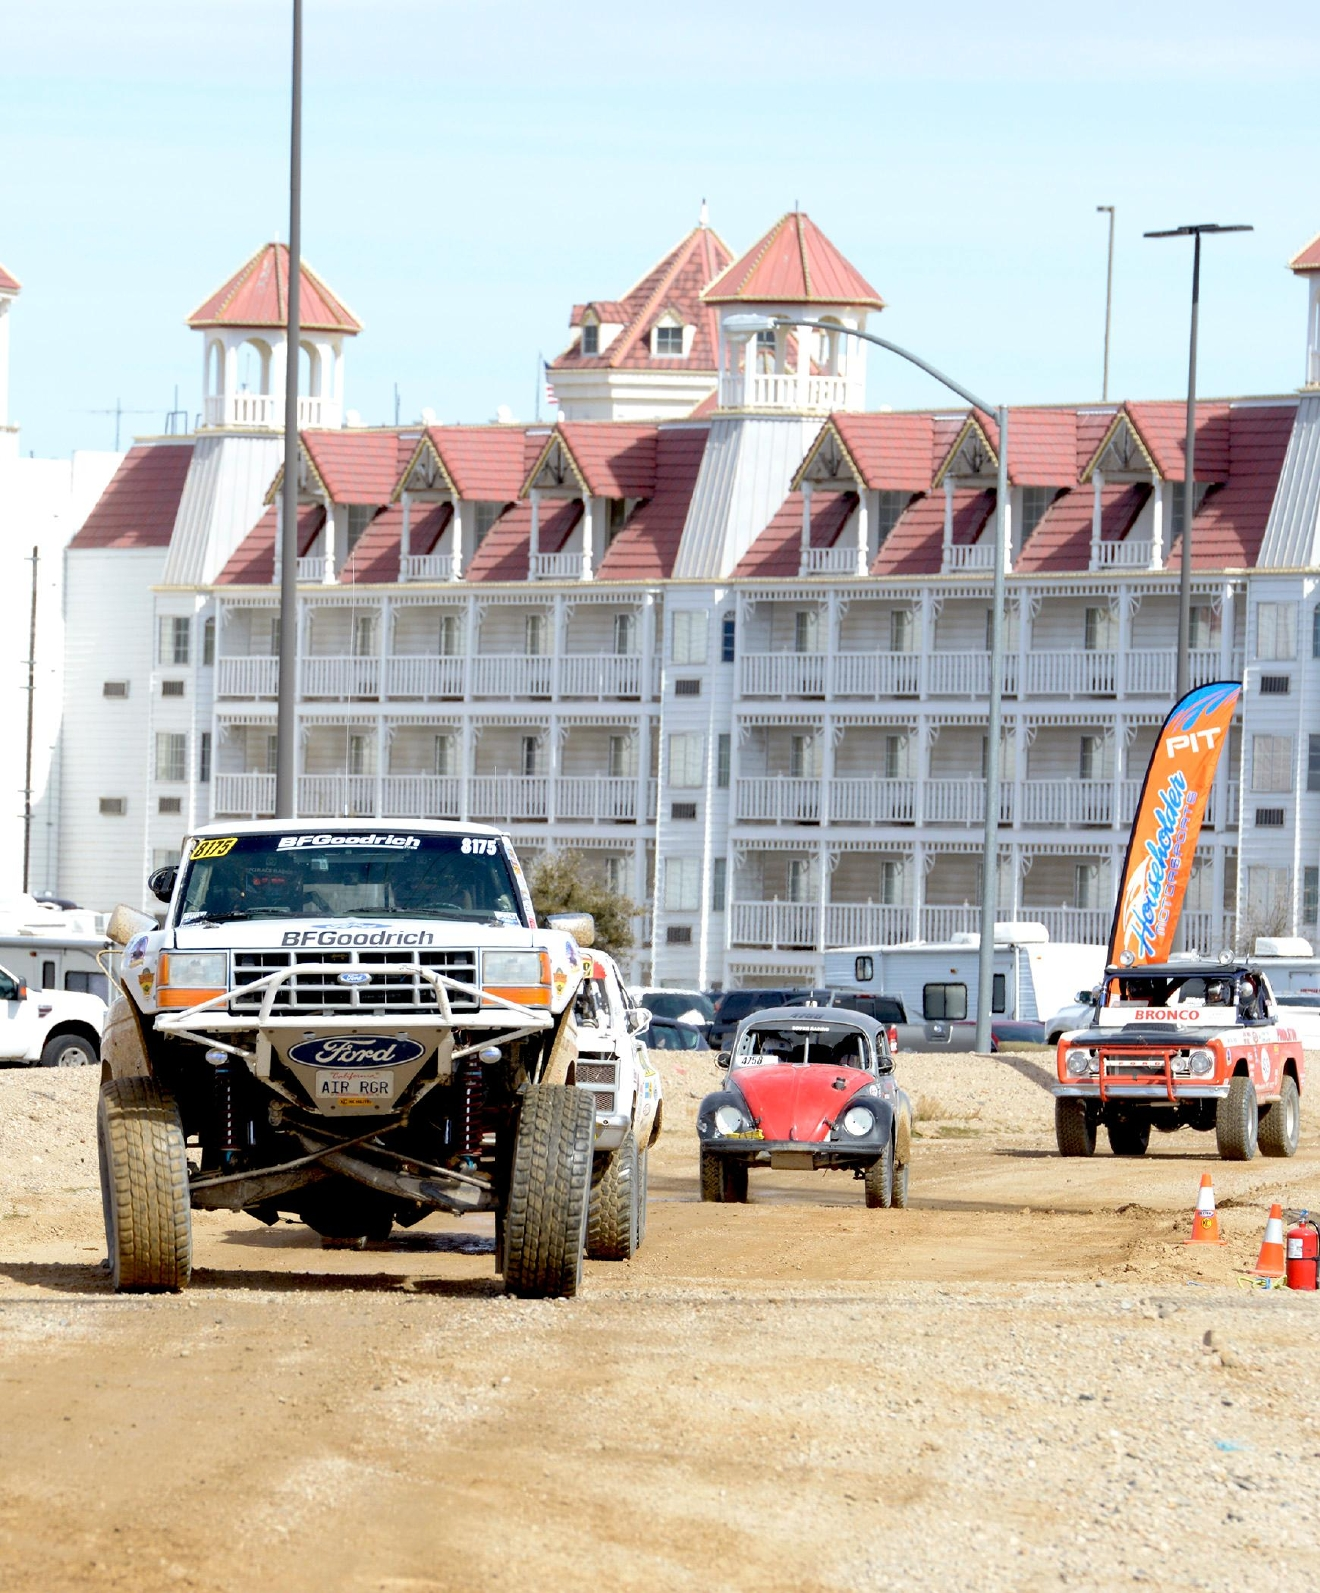 Vehicles passing through the race pit area during the Mint 400 Off-road Race in Primm, Nevada. Saturday, March 4, 2017.  [Glenn Pinkerton/Las Vegas News Bureau]